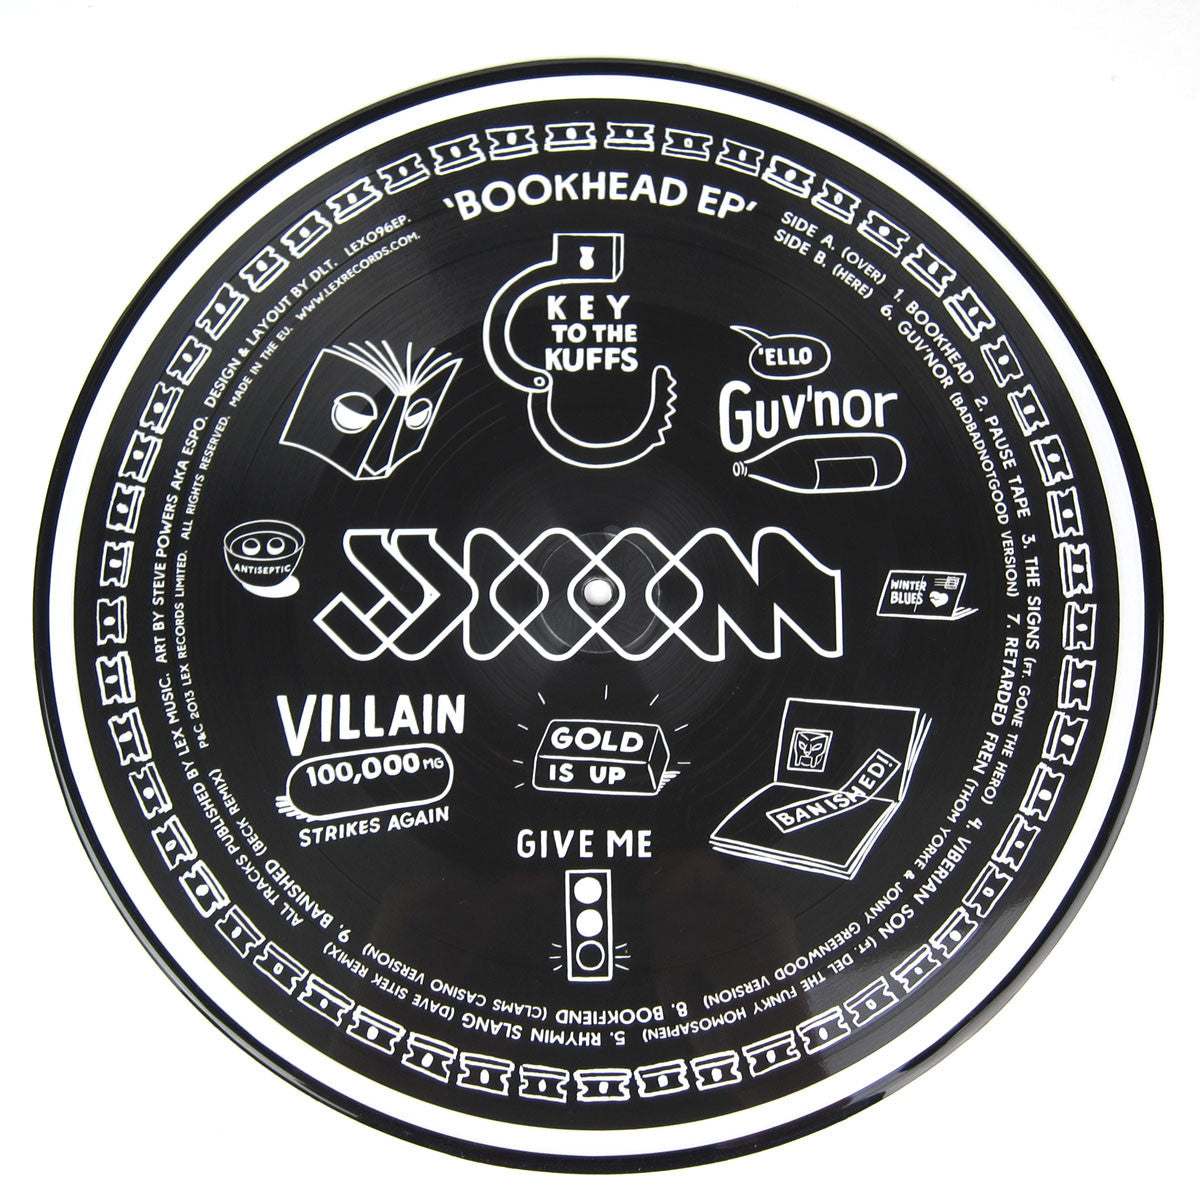 JJ Doom: Bookhead EP (Picture Disc, Free MP3) Vinyl LP 3